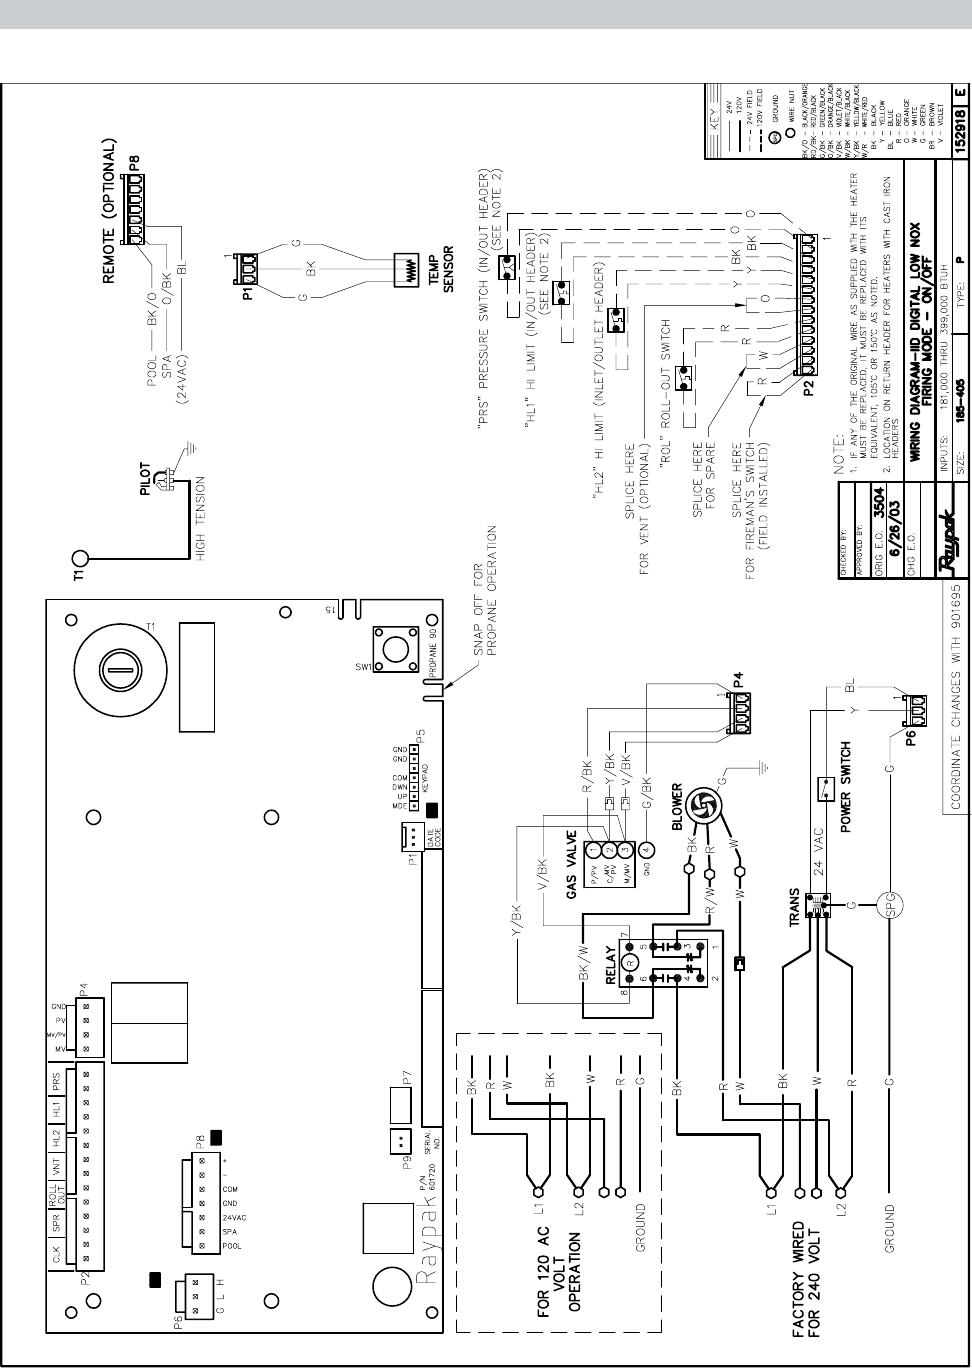 White Rodgers Zone Valve Wiring Diagram likewise Honeywell Zone Valves Wiring Diagram besides 841j8 Club Car 94 Club Car 36 Volts Goes Forward Clicks further Control Valve Wiring Diagram in addition Coleman Ac Thermostat Wiring Diagram. on honeywell zone control wiring diagram